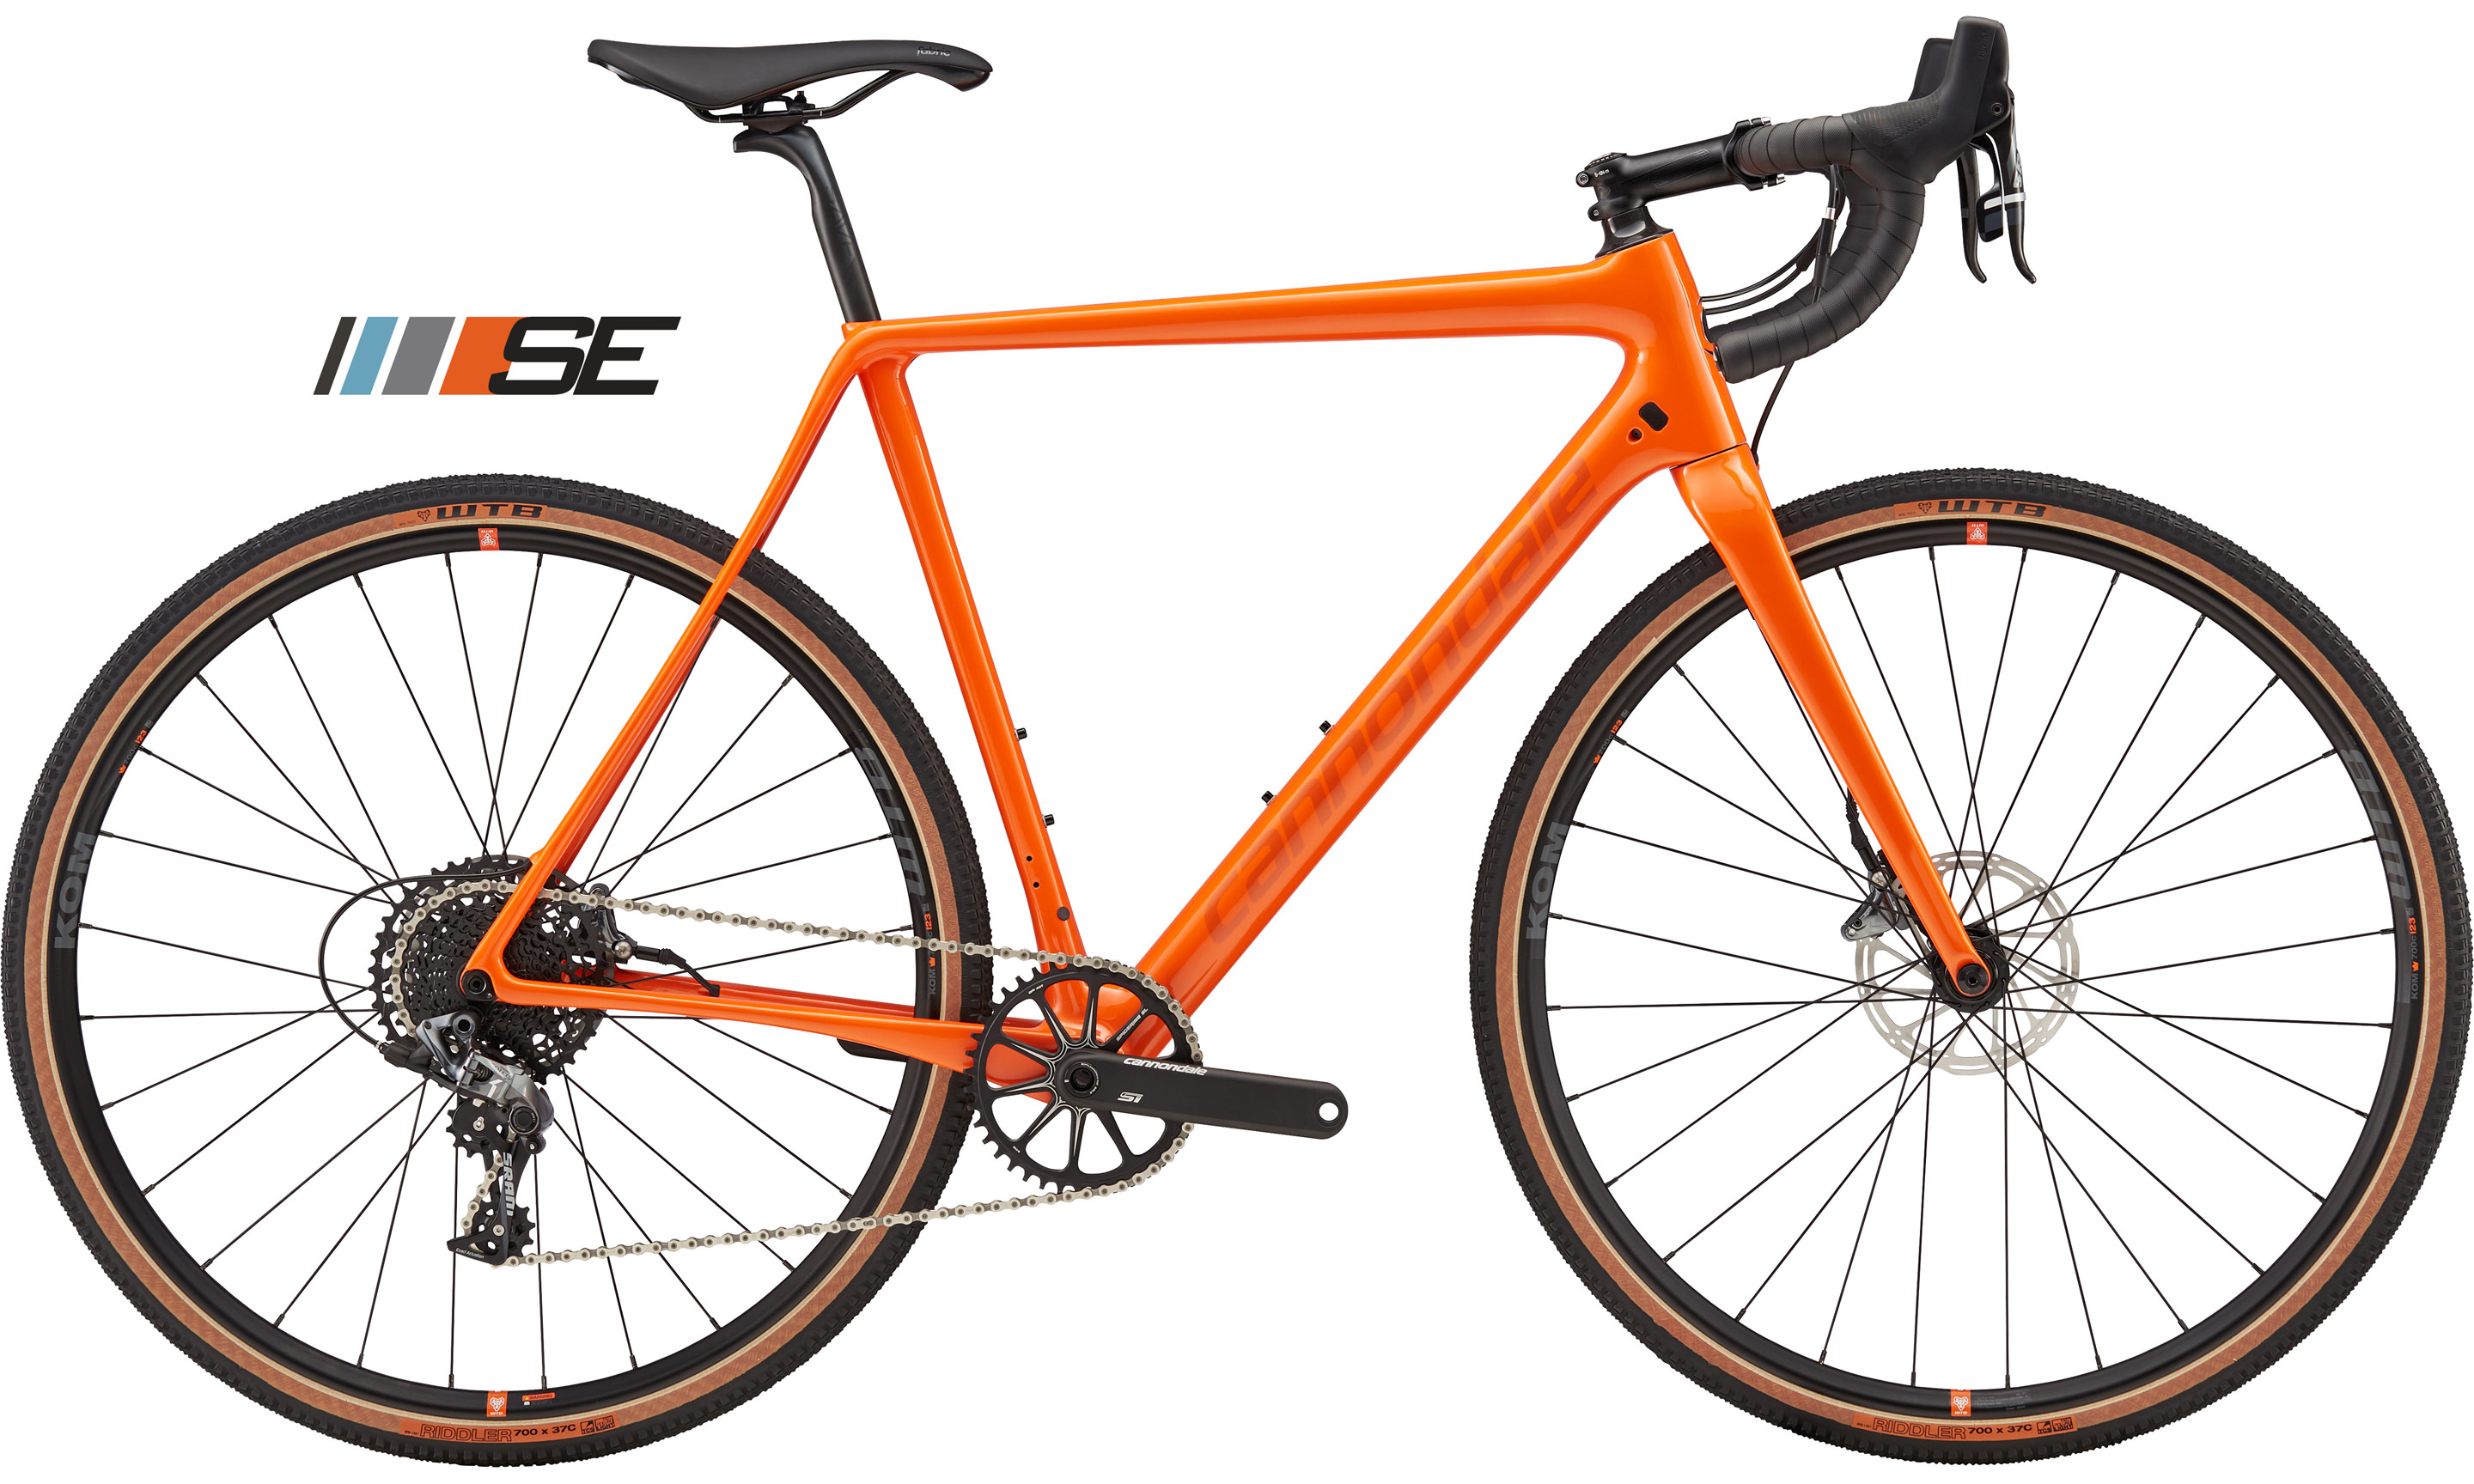 SuperX Force 1 SE | Culture Vélo